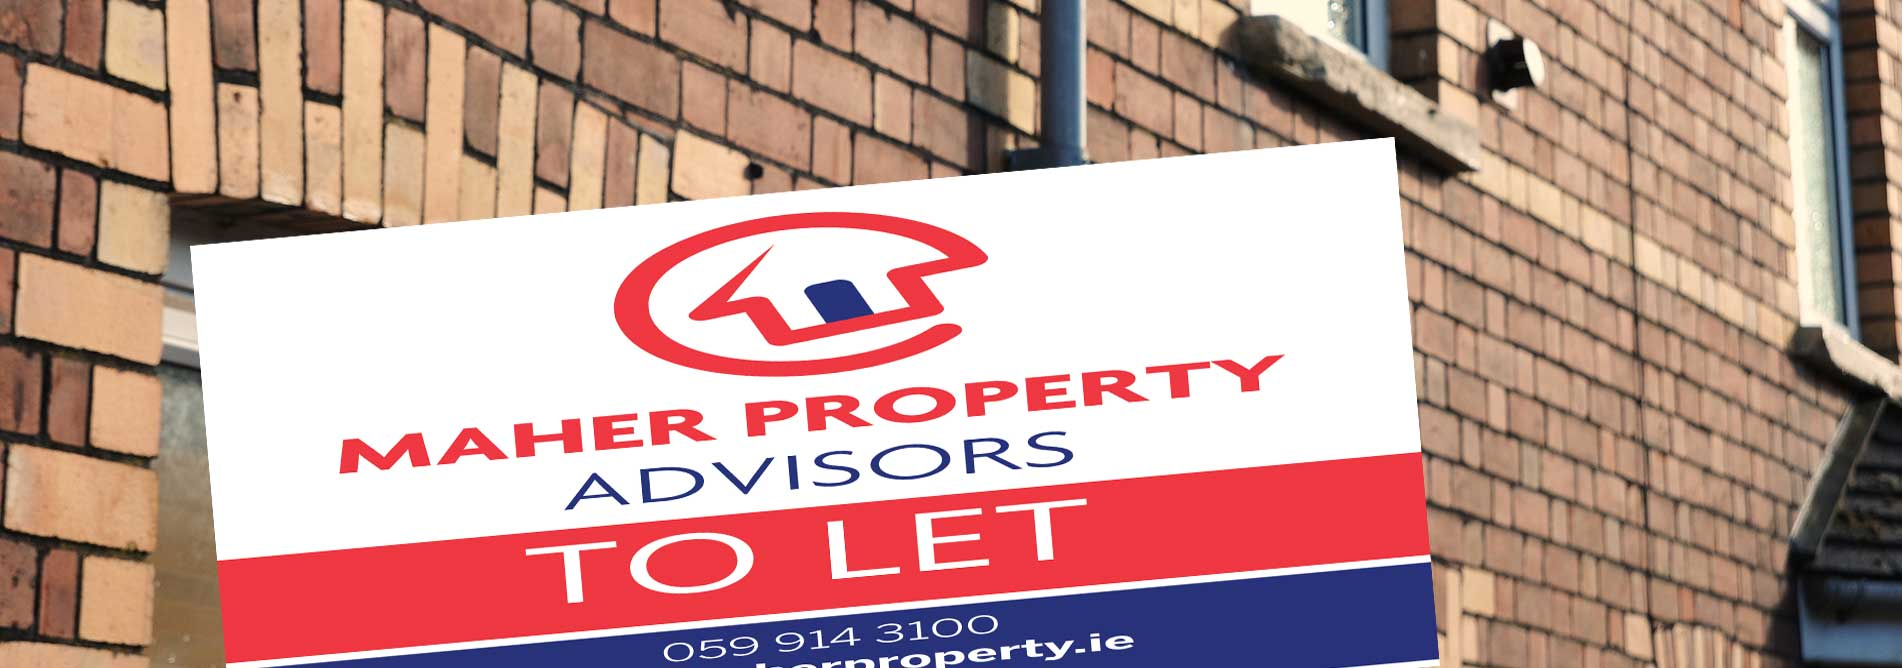 maher property advisors letting sign